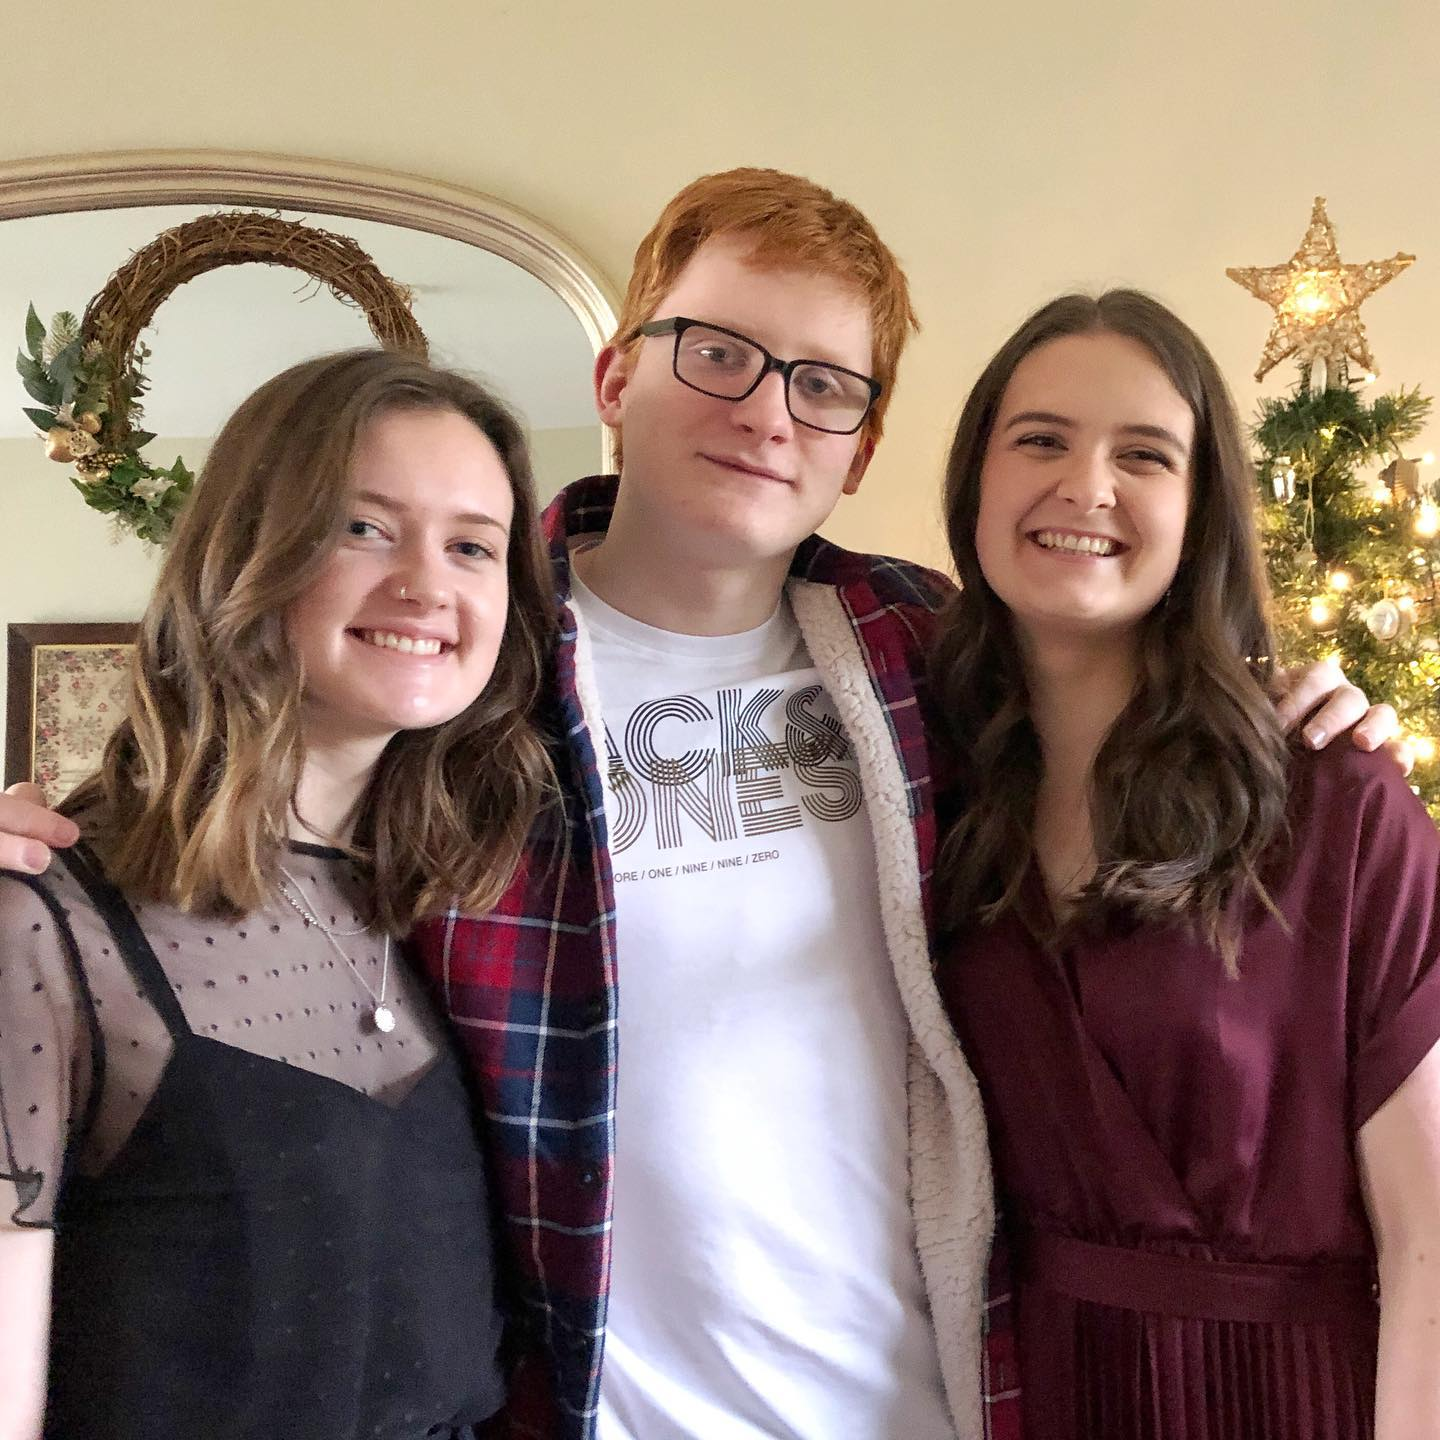 The loveliest Christmas morning with these 3 .... who still tolerate my photo taking!  Not the Christmas we expected so appreciating all we have.